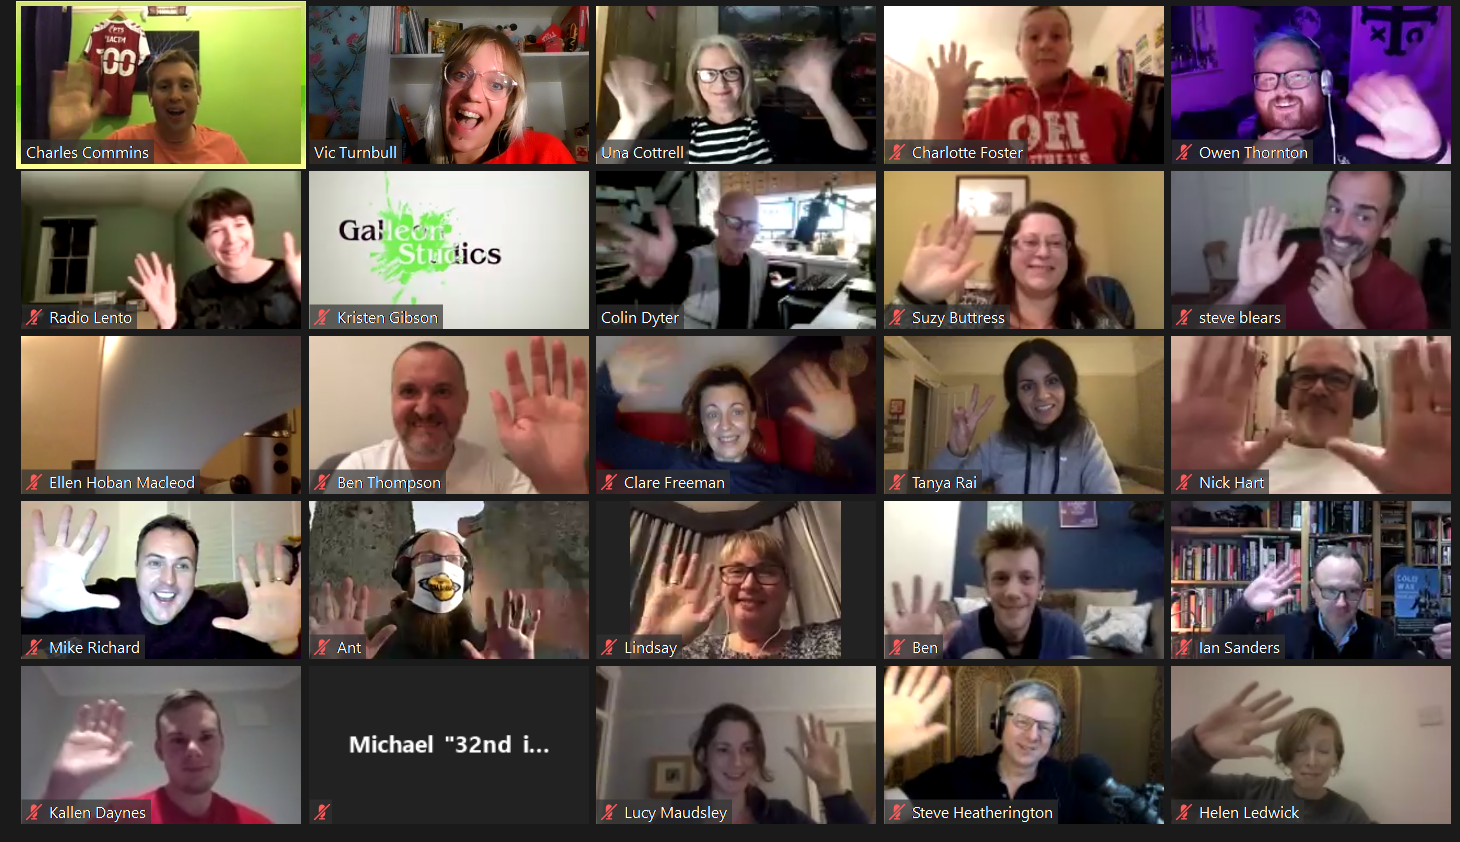 a screen grab from a zoom call. a 5x5 grid - in each grid is a different face smiling and waving